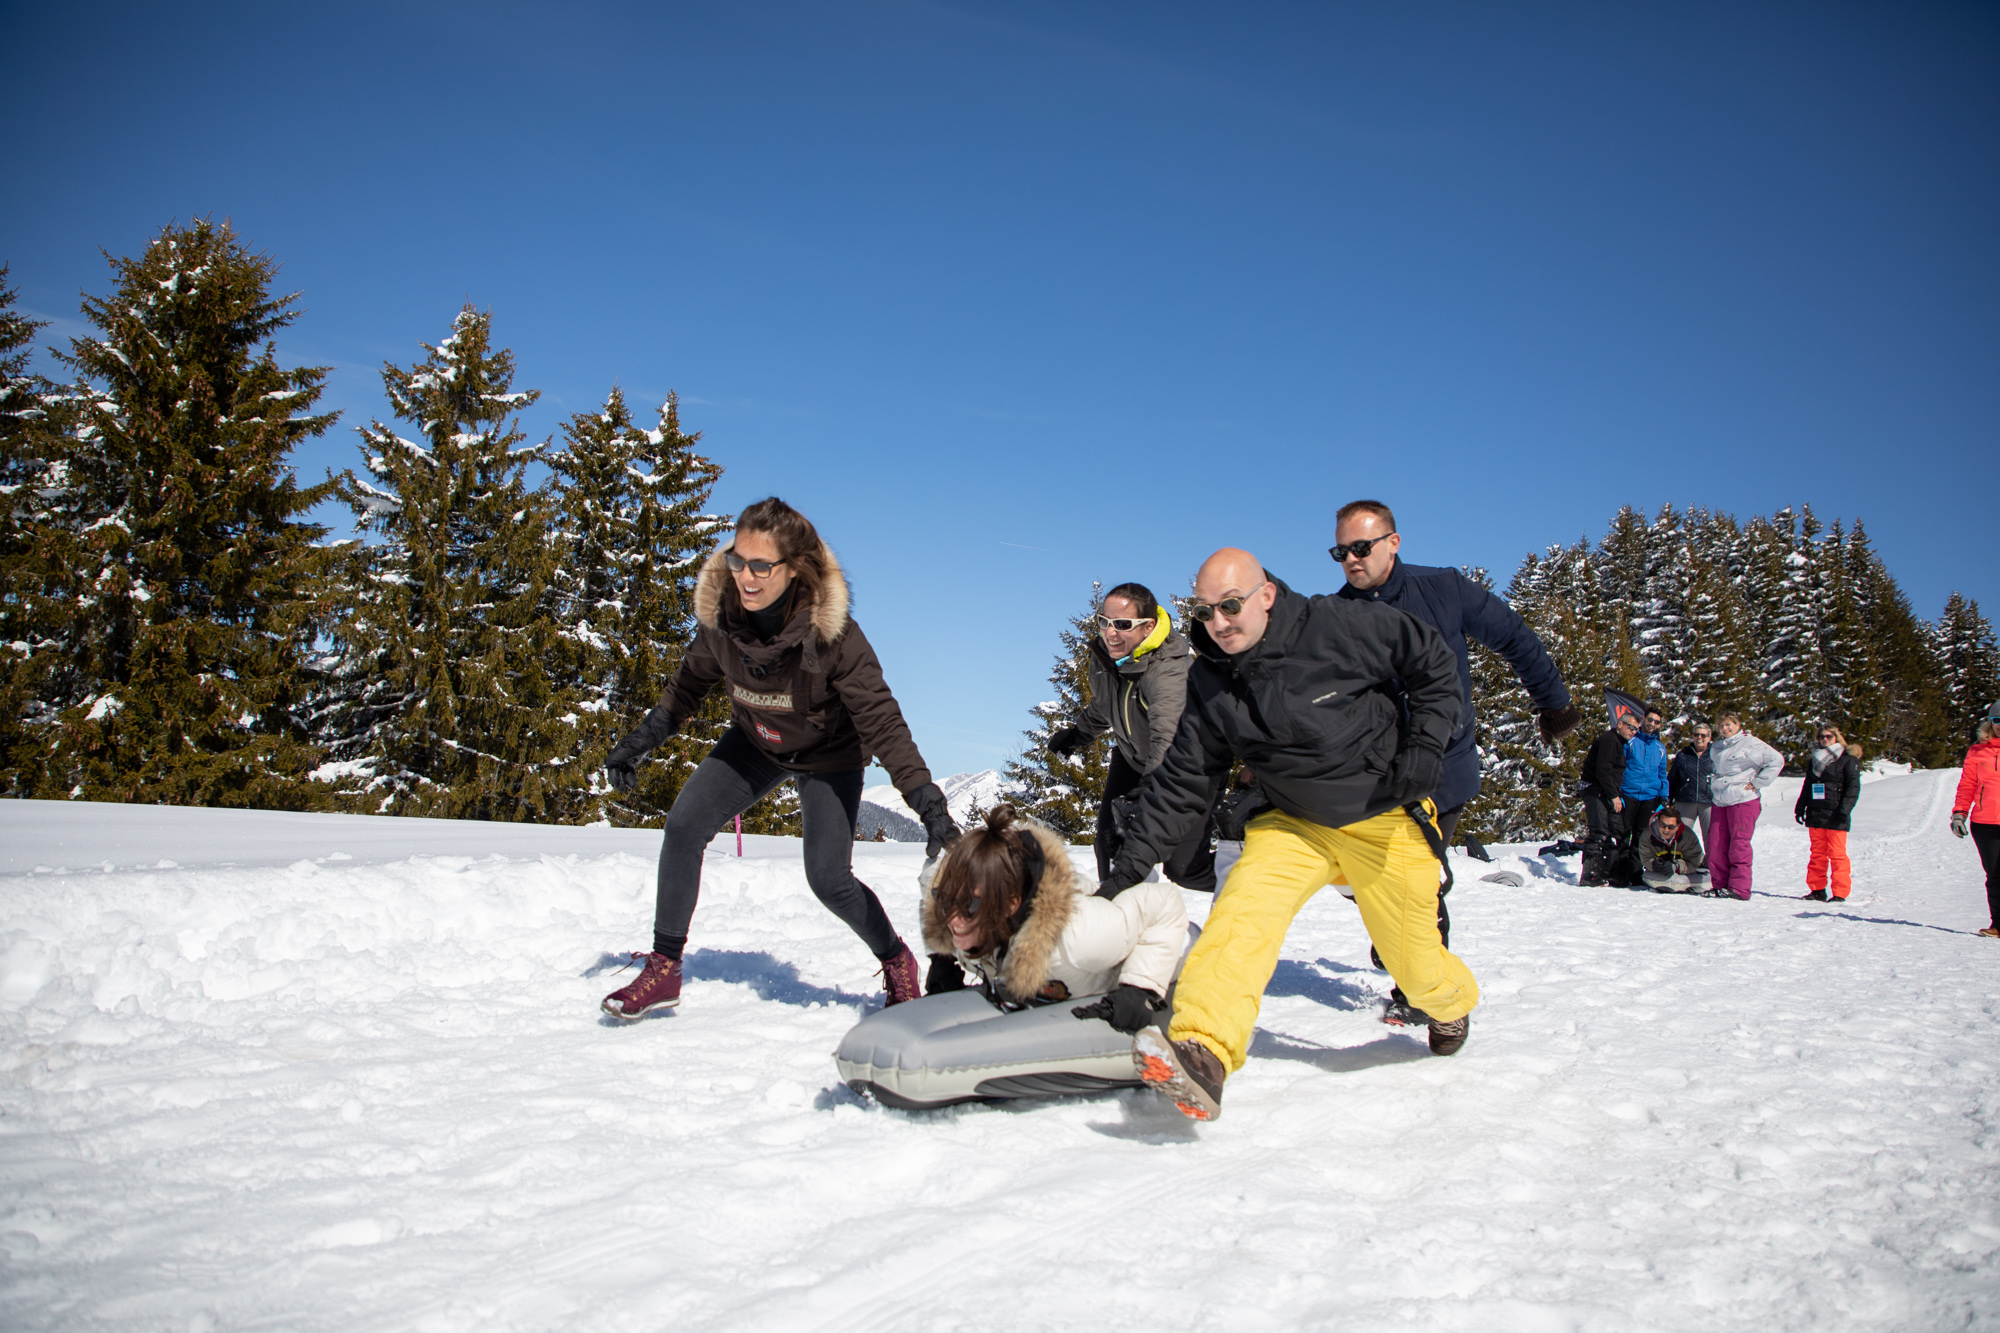 Break_The_Ice_LaClusaz_2019_web-6829.jpg